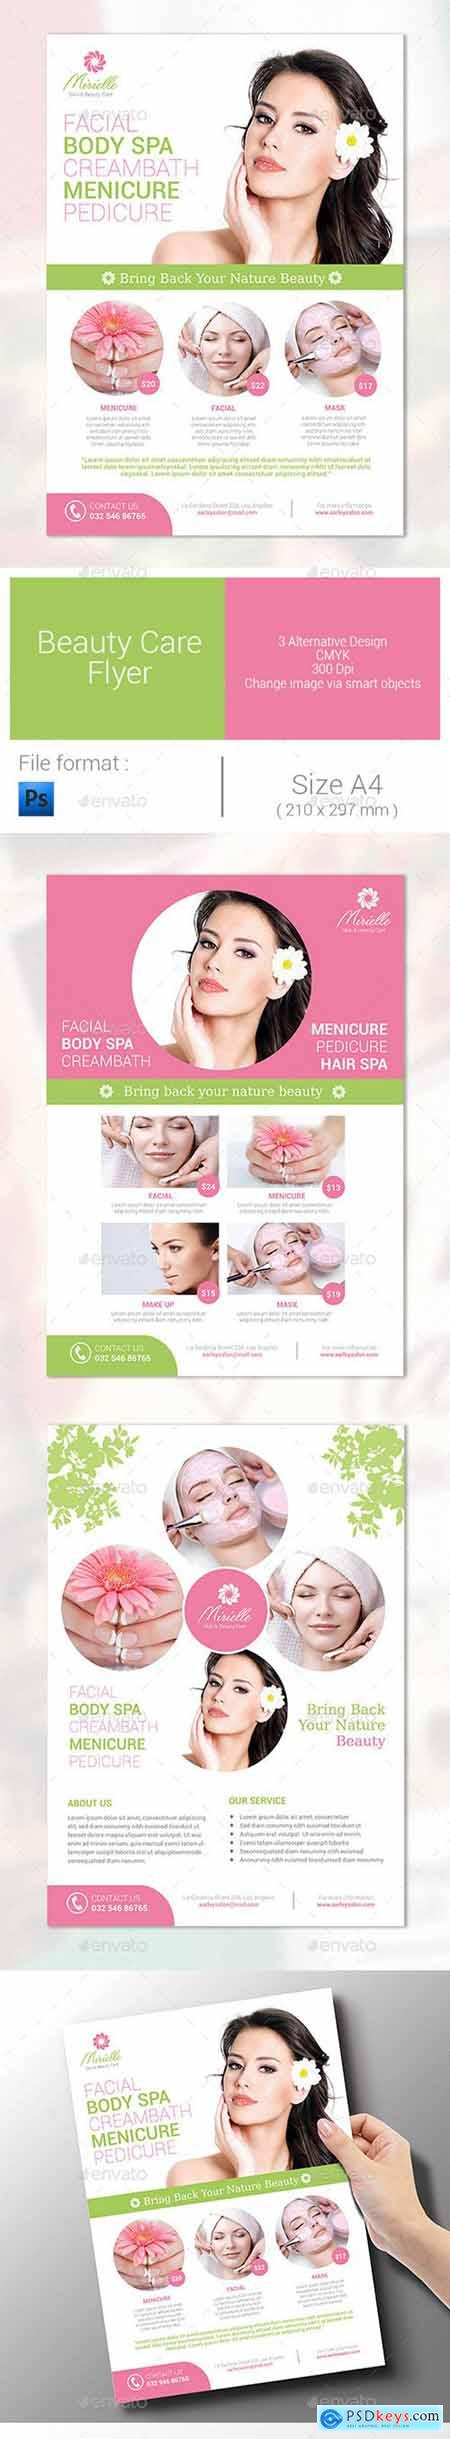 Beauty Care Flyer 9267641